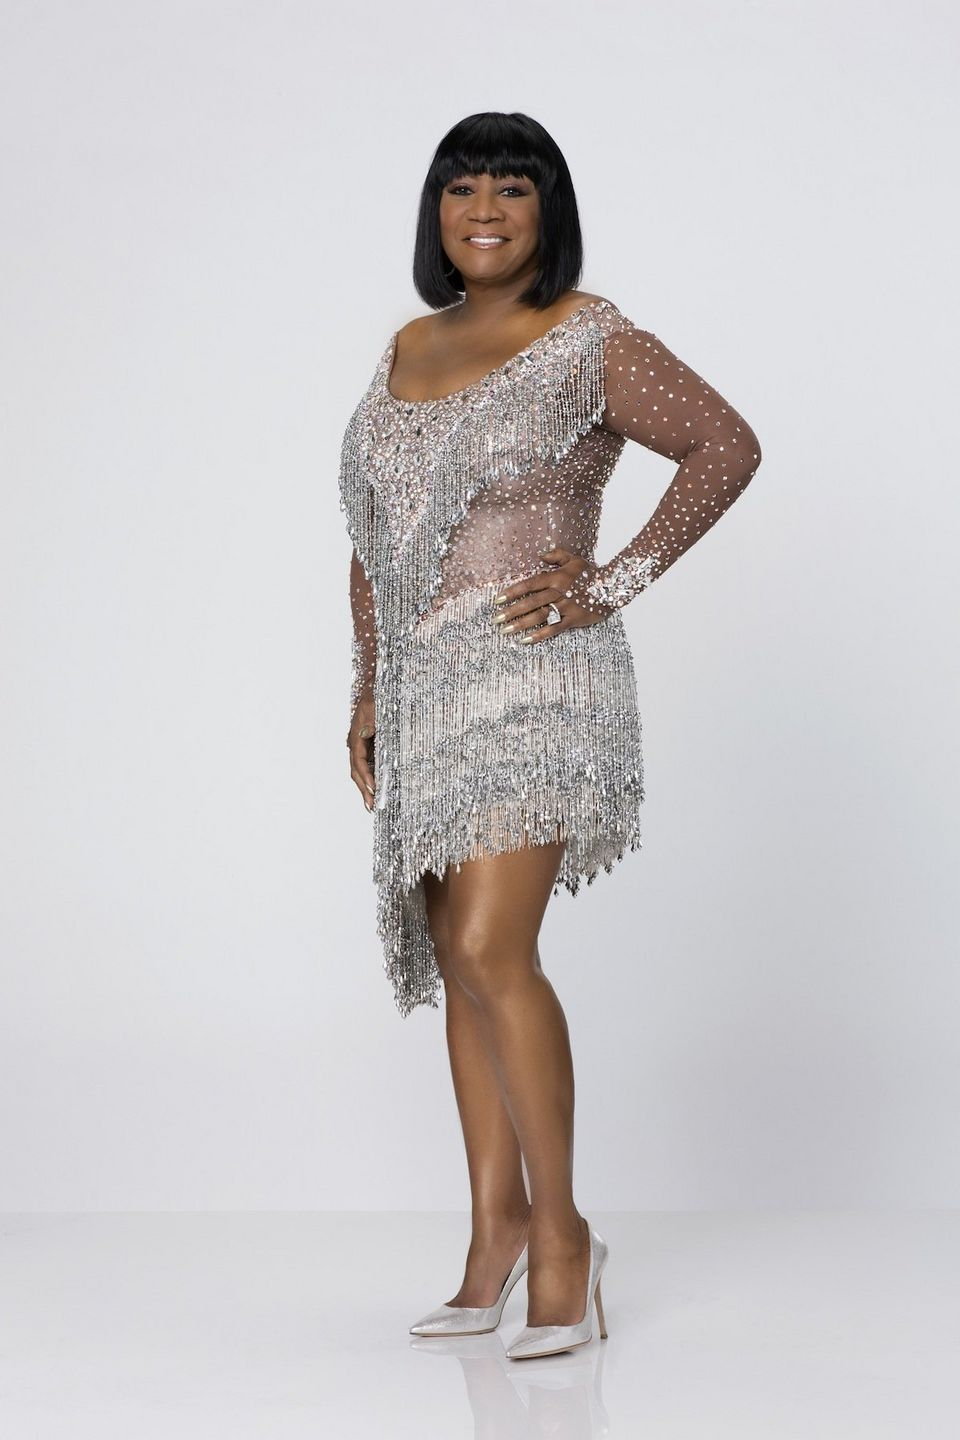 Patti LaBelle Patti LaBelle new pics